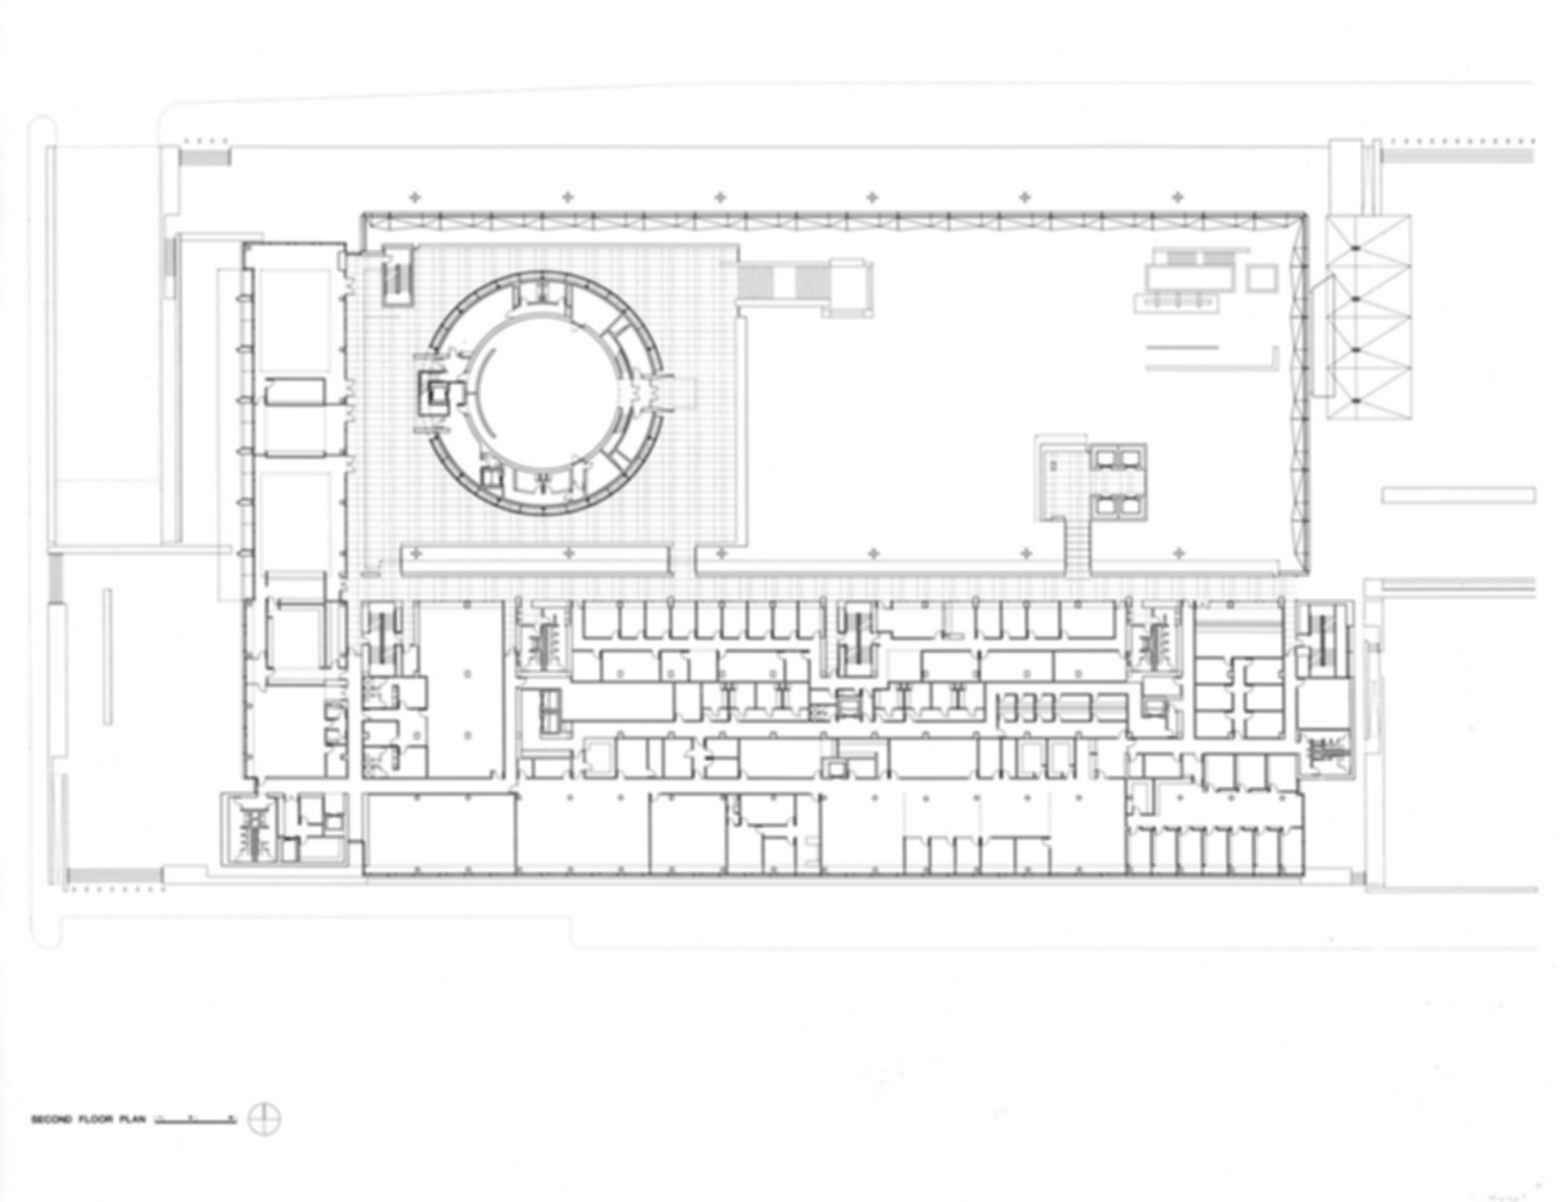 United States Courthouse, Phoenix, Arizona - Floor Plan